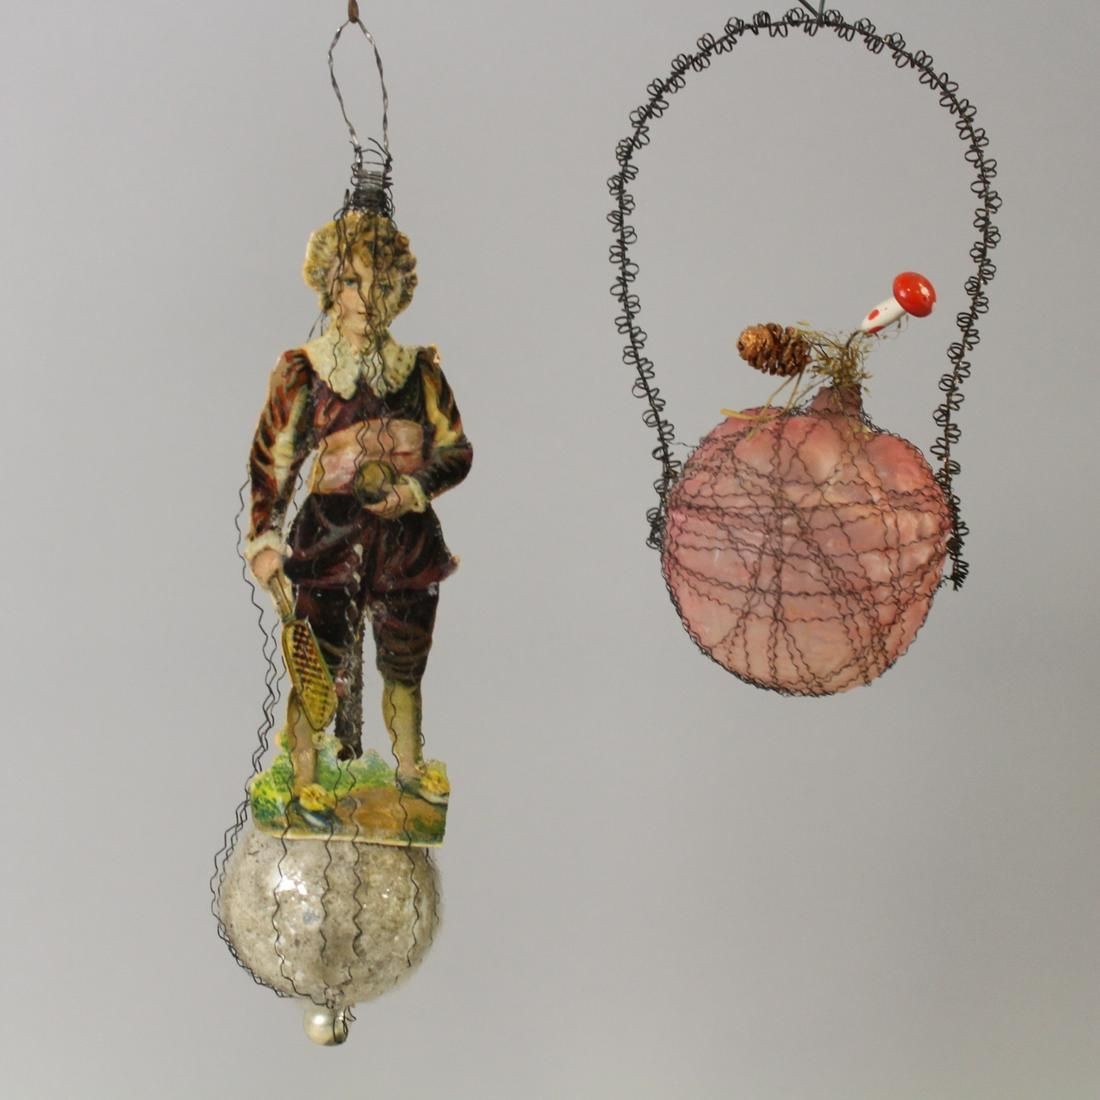 19th C Blown Glass & Wired Ornaments